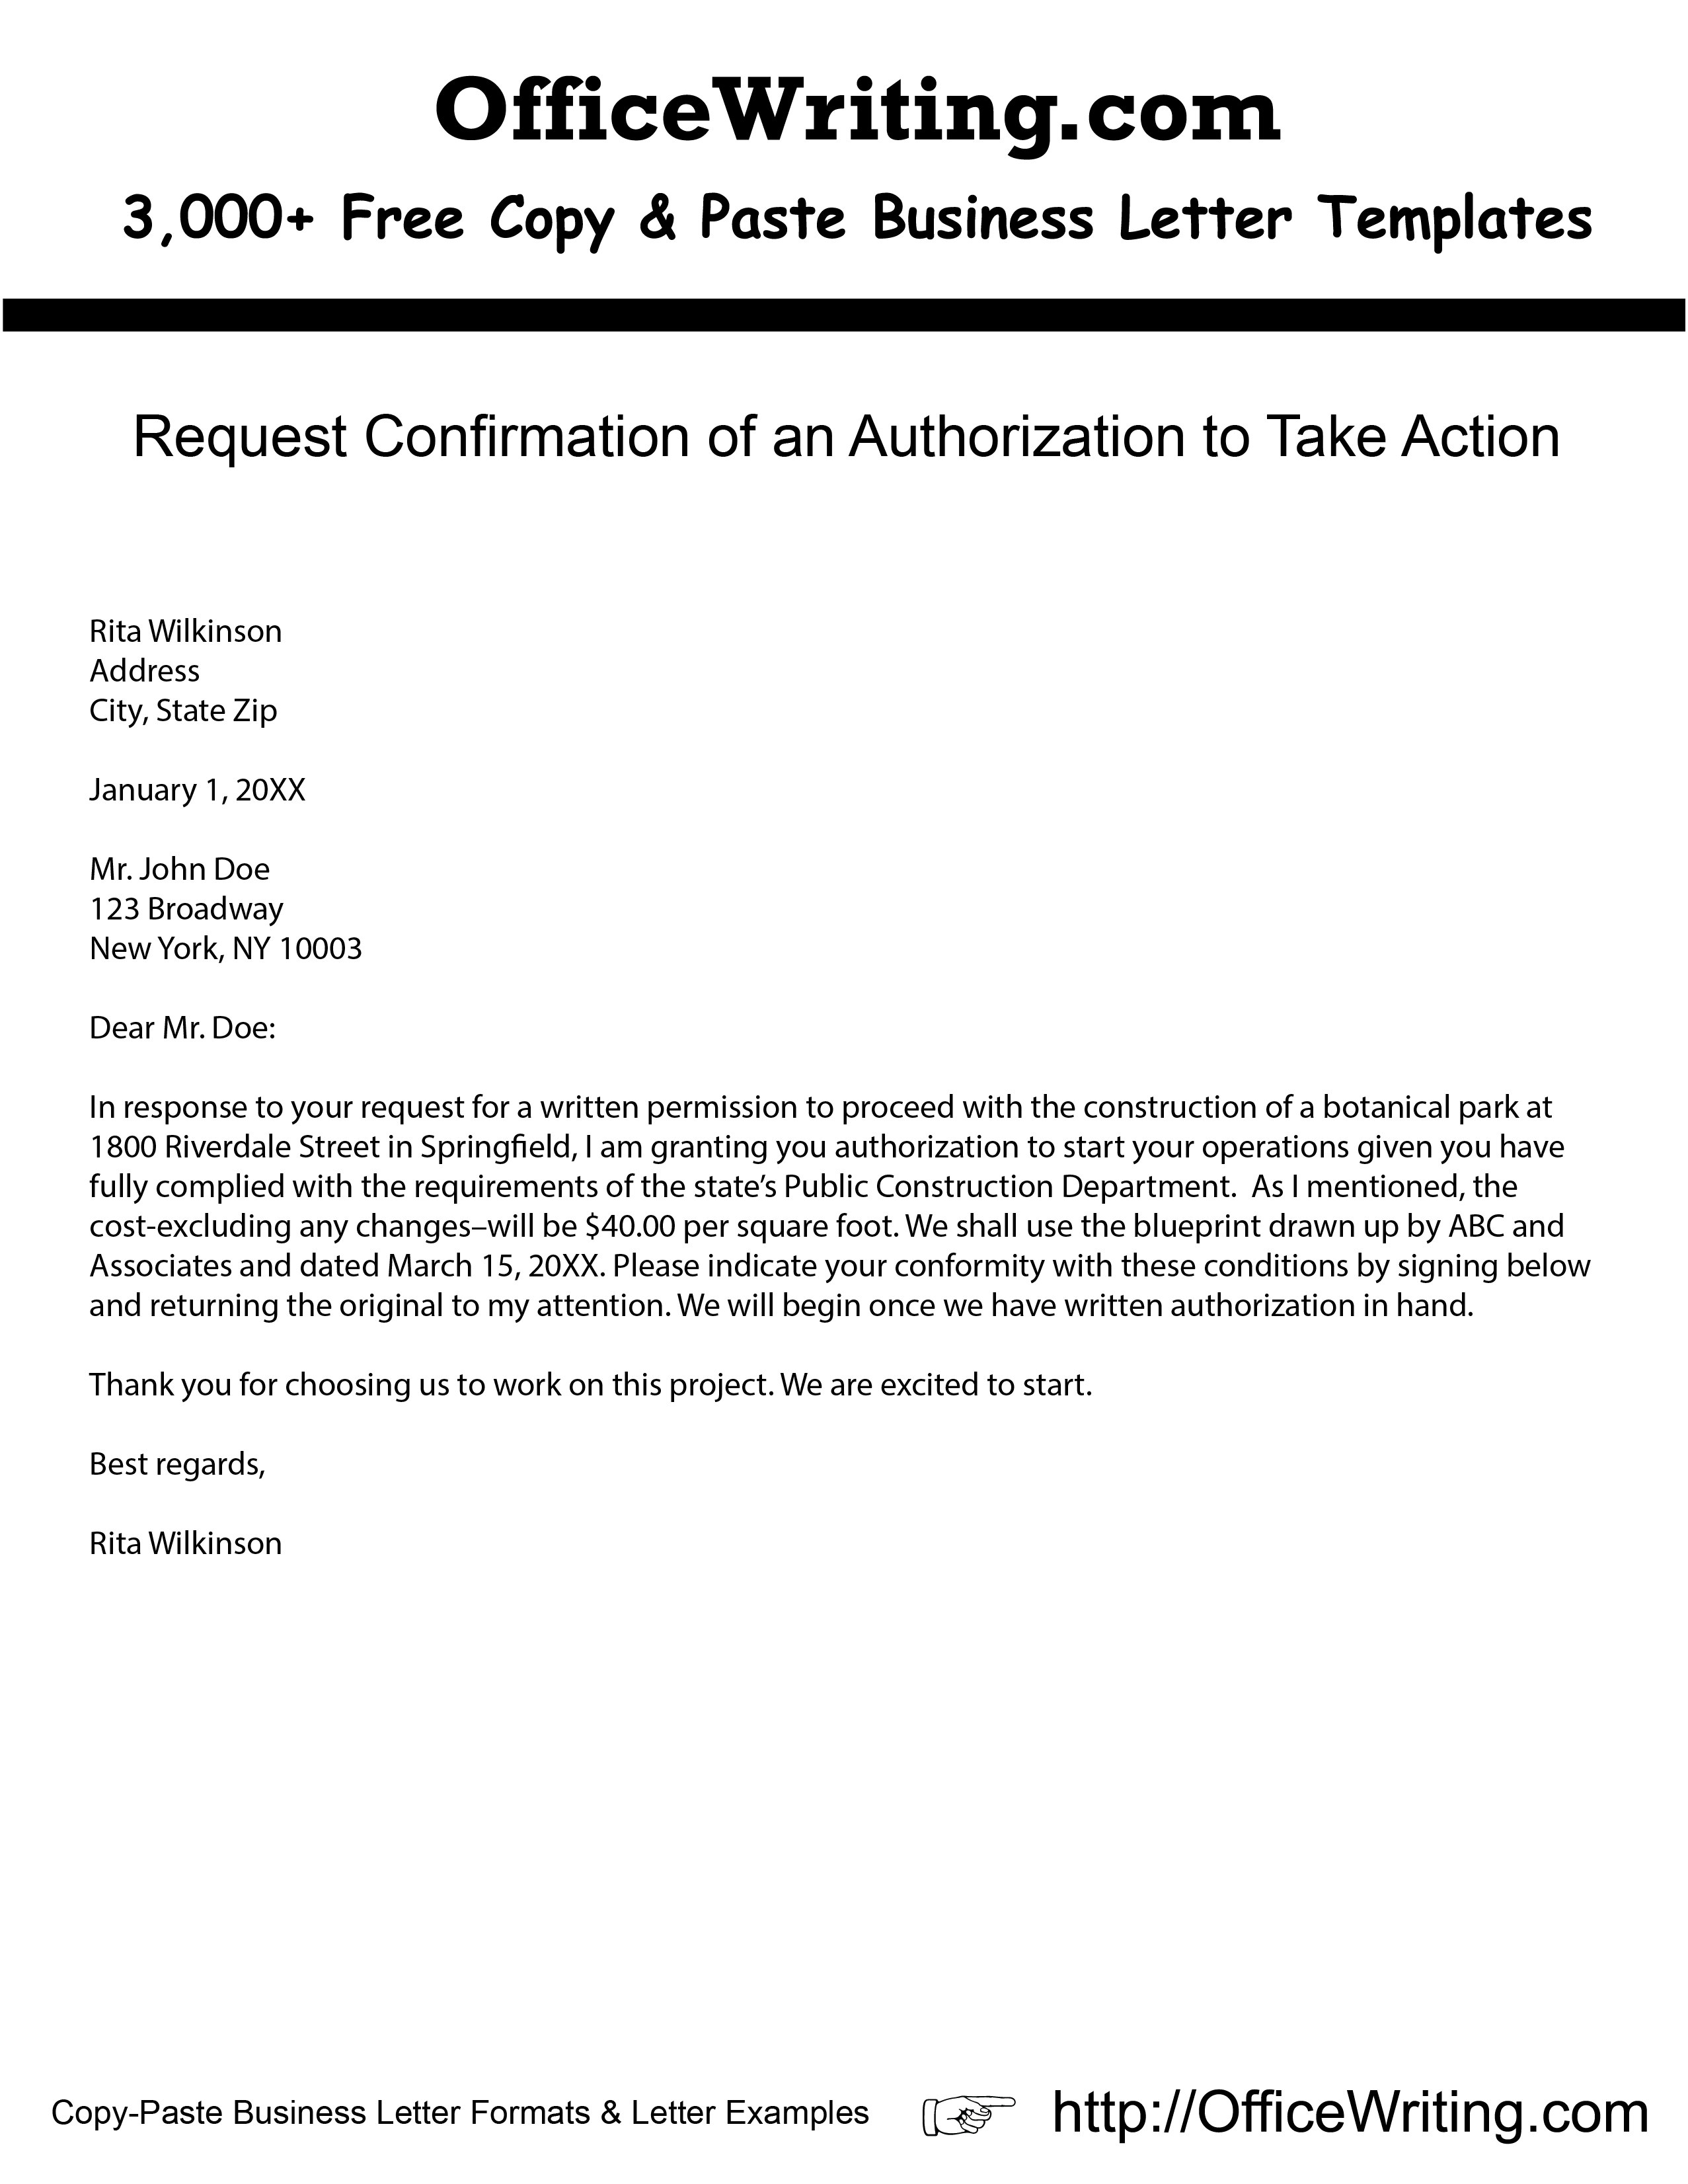 Request Confirmation of an Authorization to Take Action